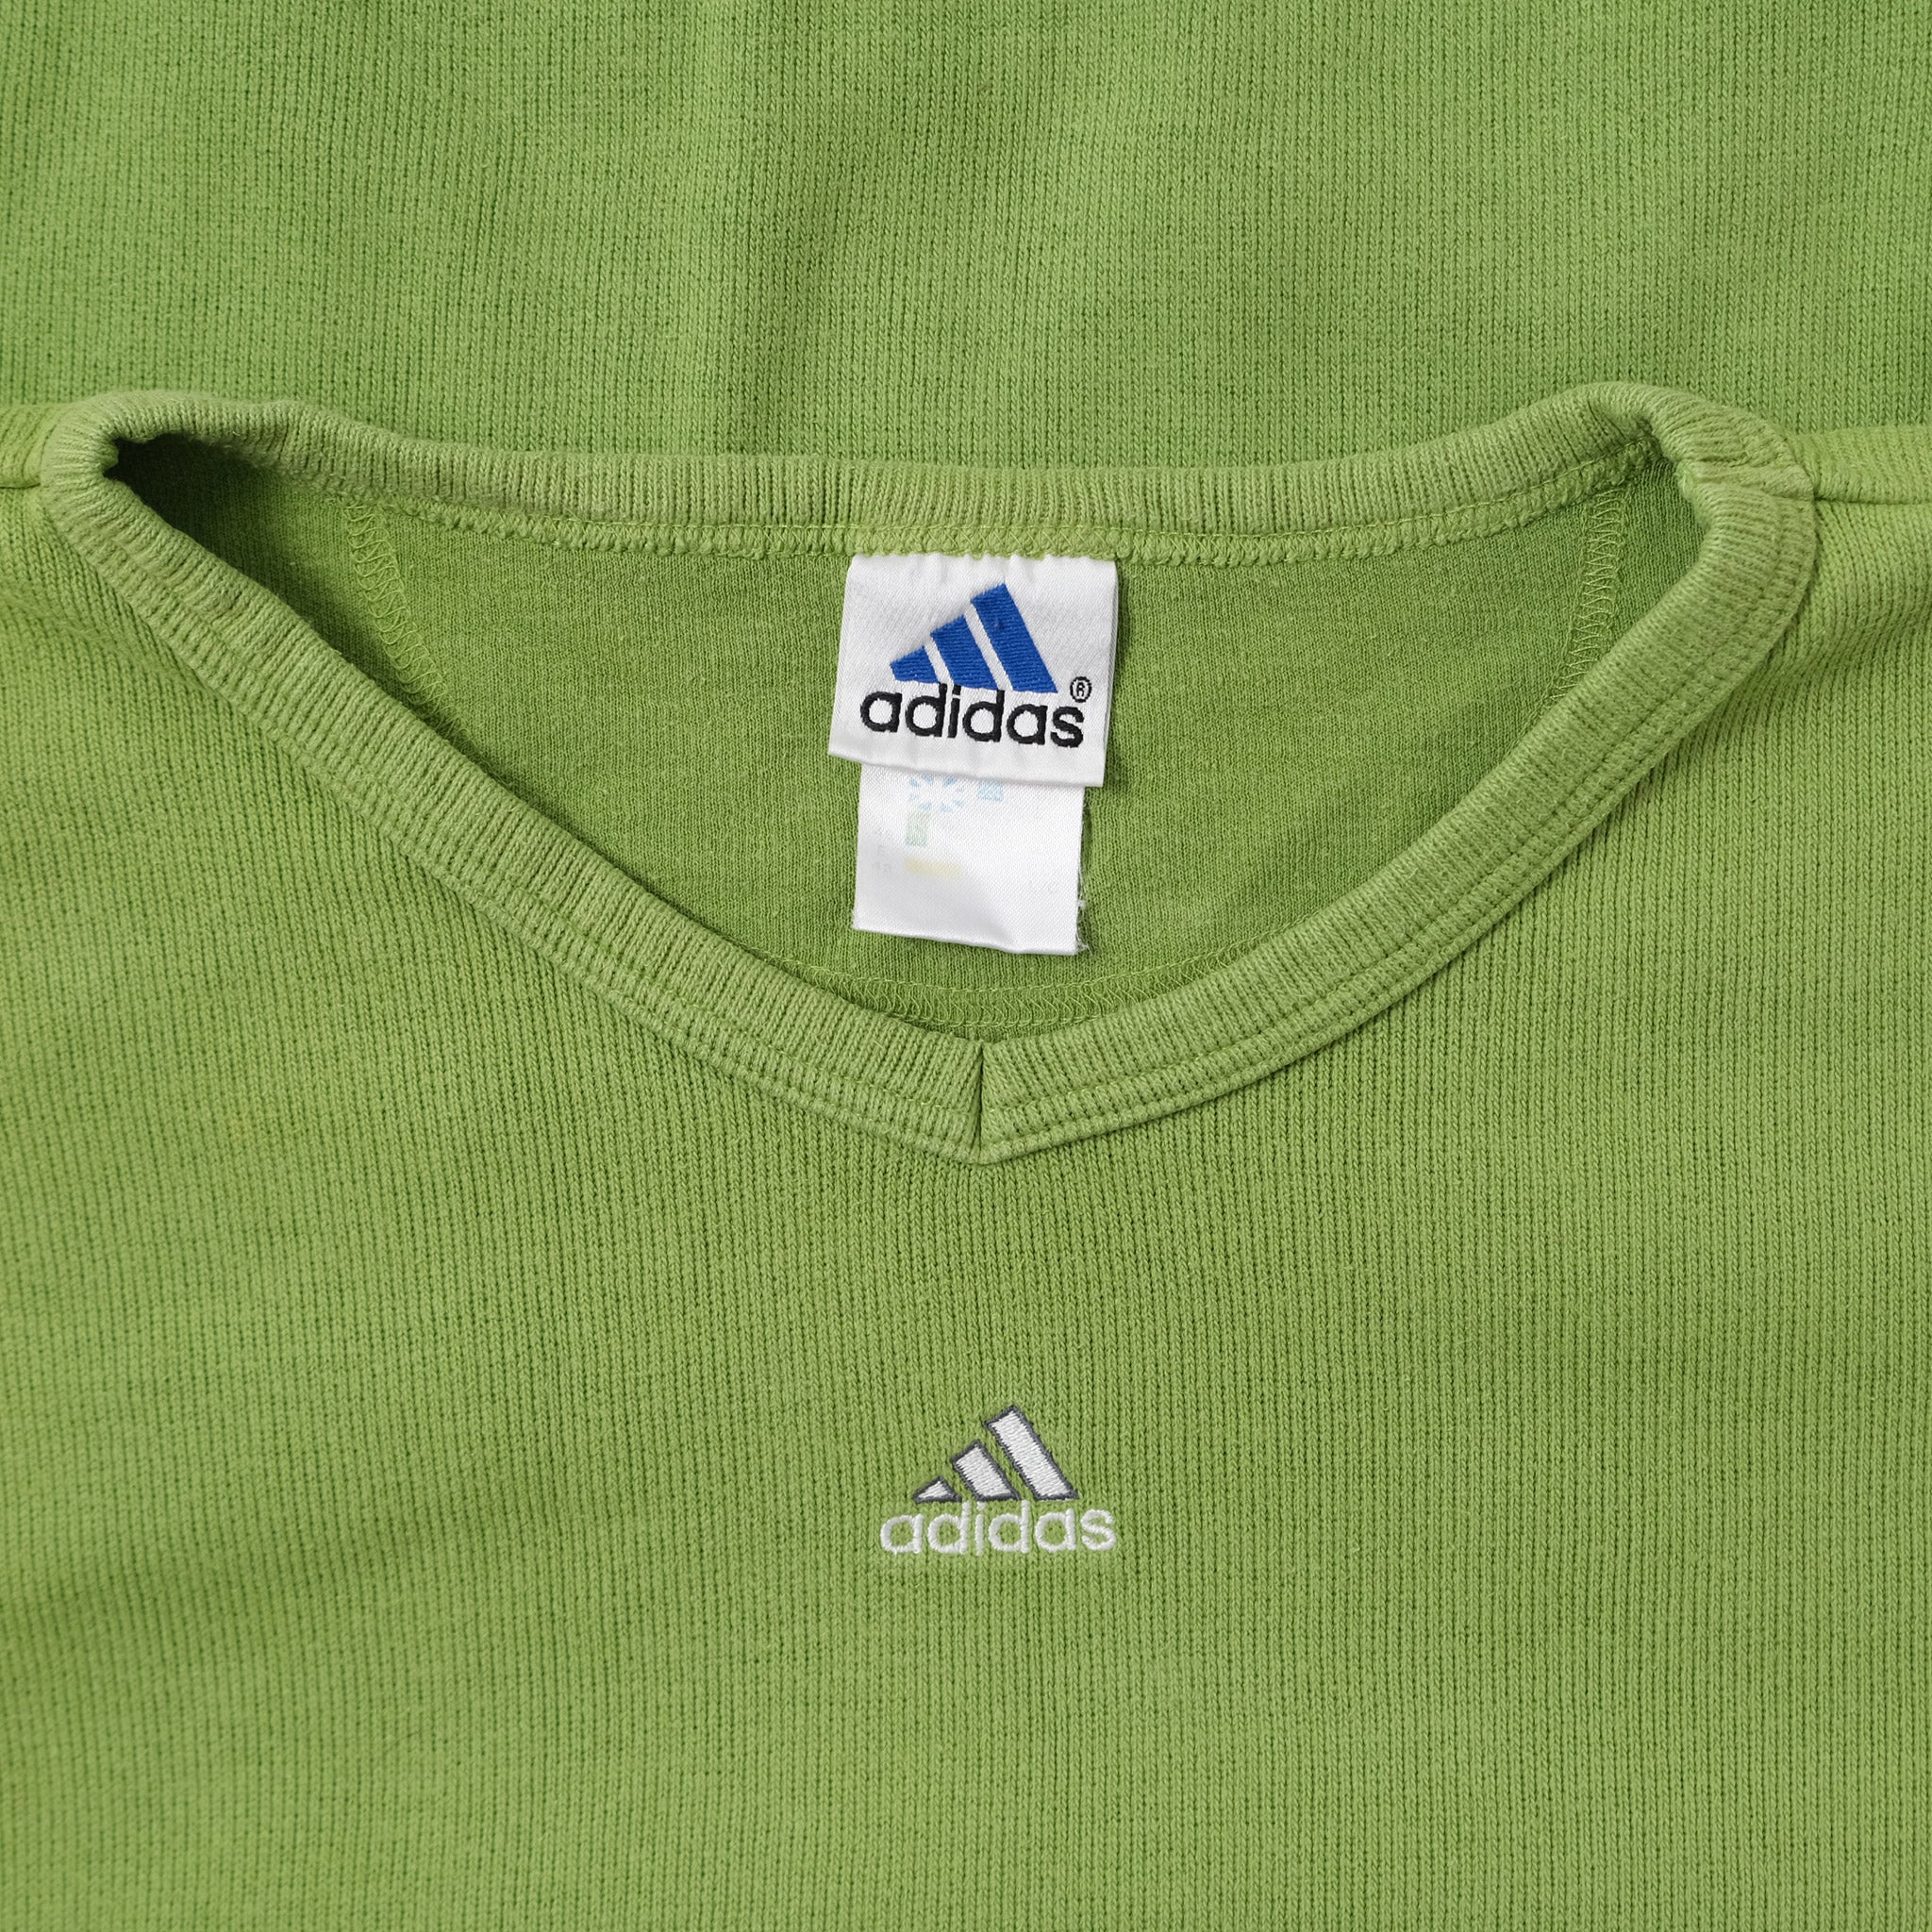 Vintage adidas V-Neck Sweater Medium